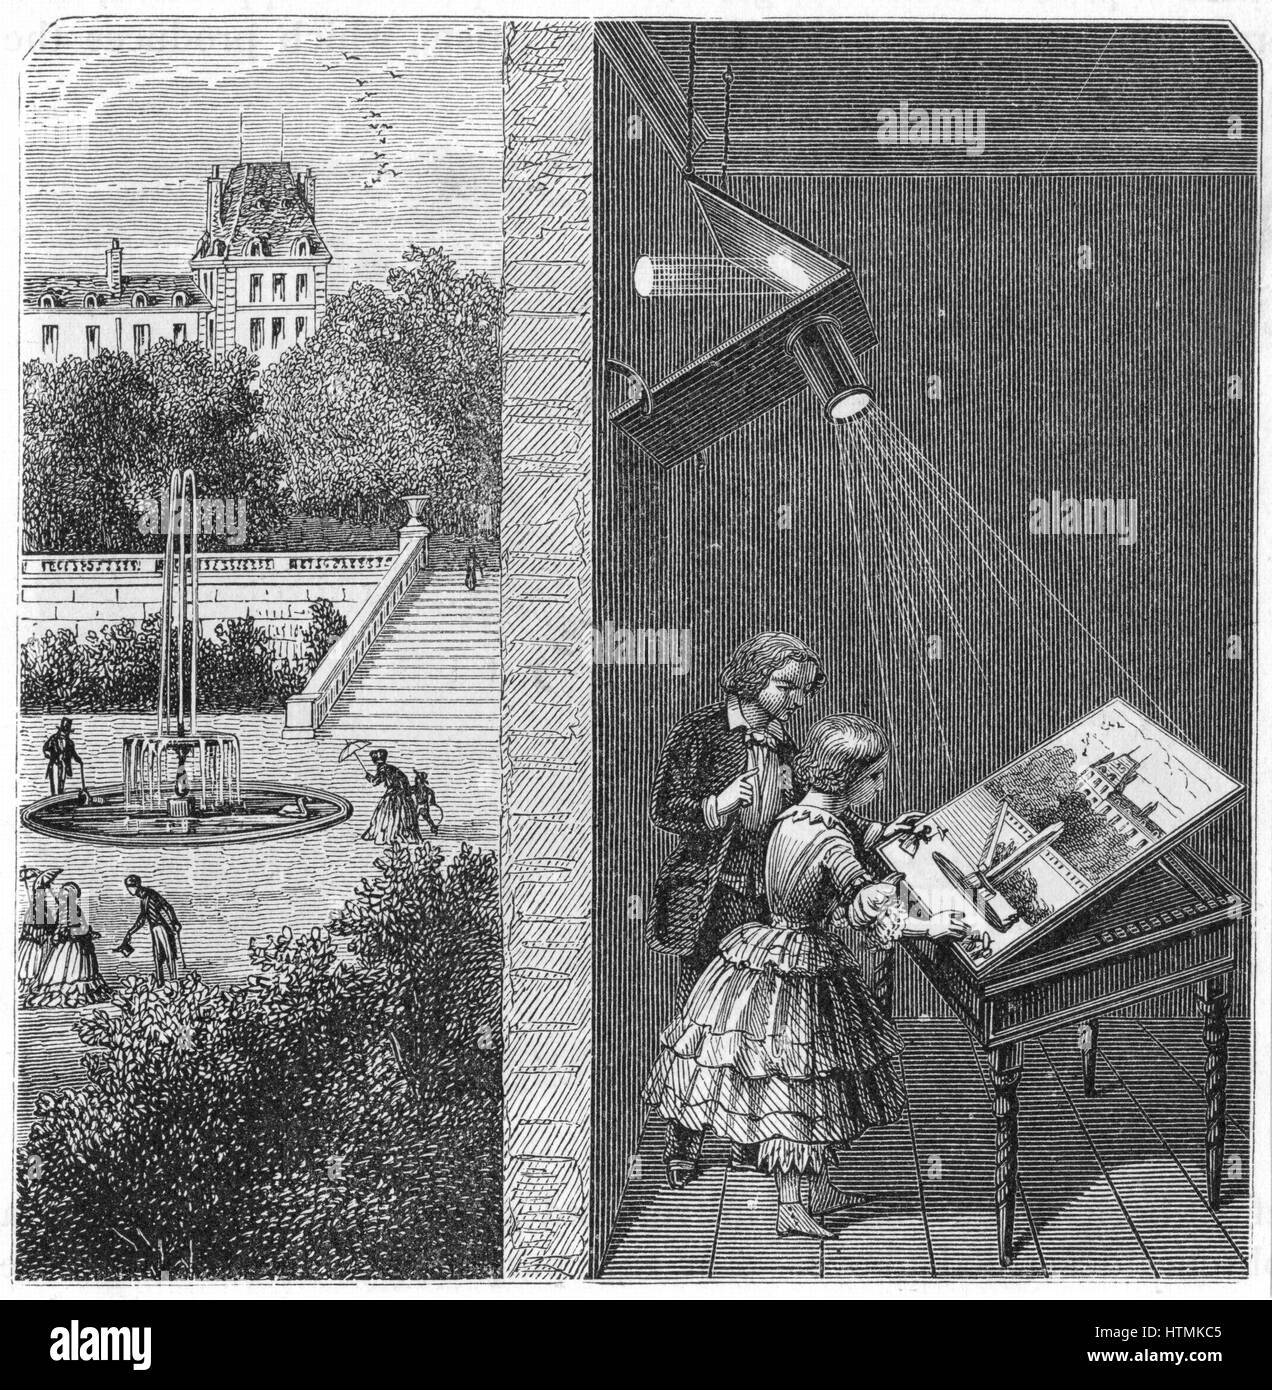 Children watching an outdoor scene through a camera obscura. From A Ganot 'Natural Philosophy' London, 1887 - Stock Image